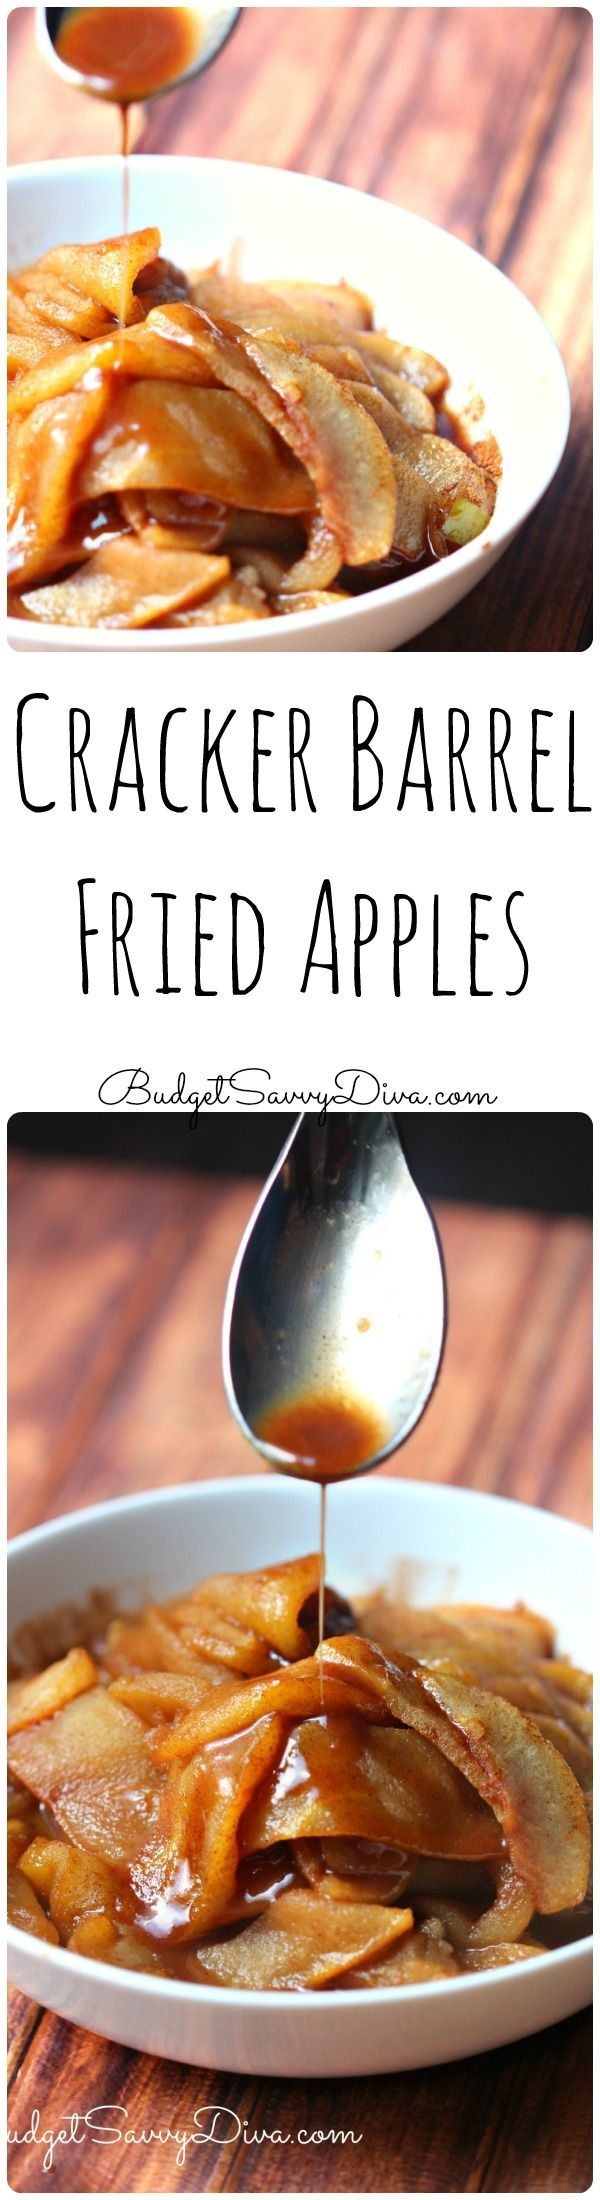 Copy Cat Recipe! Cracker Barrel Copy Cat Recipe! Gluten Free and SUPER easy to make - very frugal - 6 servings for about $5 - Must Make - Cracker Barrel Fried Apples Recipe